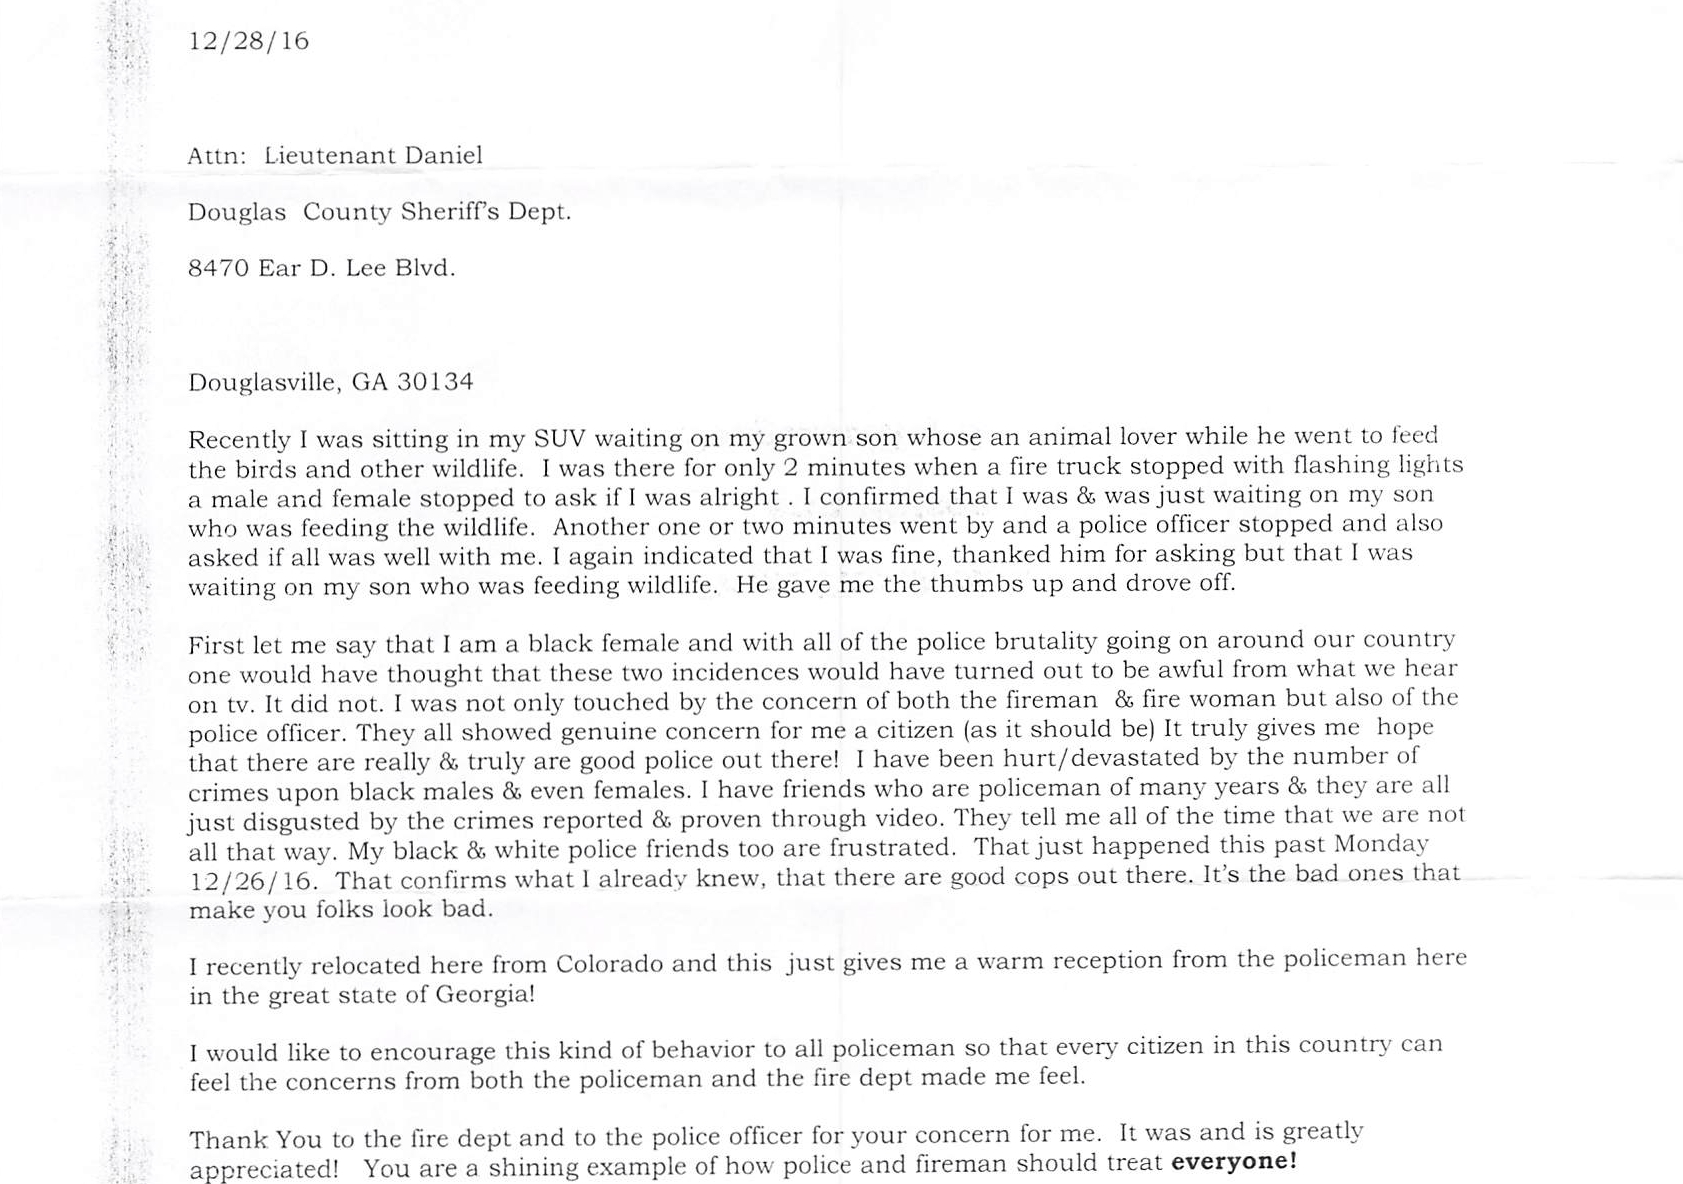 The Douglas County Sheriff's Office Recently Received This Letter of Thanks